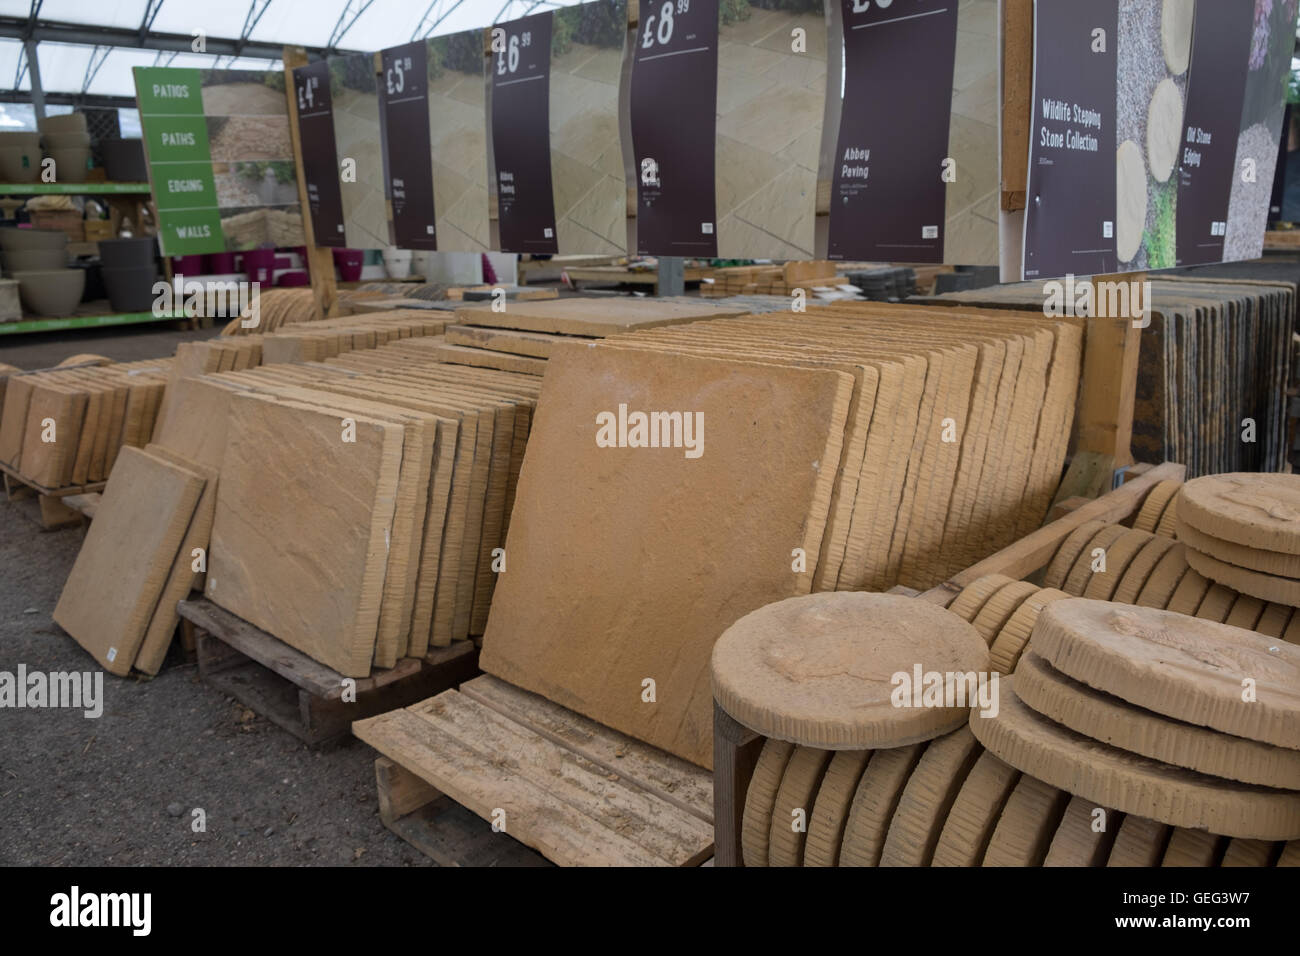 Decorative Paving Slabs On Display At A Garden Centre. Outdoor Pool Furniture Newcastle. Distinctly Home Patio Furniture. Cheap Patio Furniture Las Vegas. How To Lay Patio Pavers Level. Build Your Patio Online. Resin Patio Bistro Set. Nice Cheap Patio Chairs. Outdoor Patio Bbq Ideas